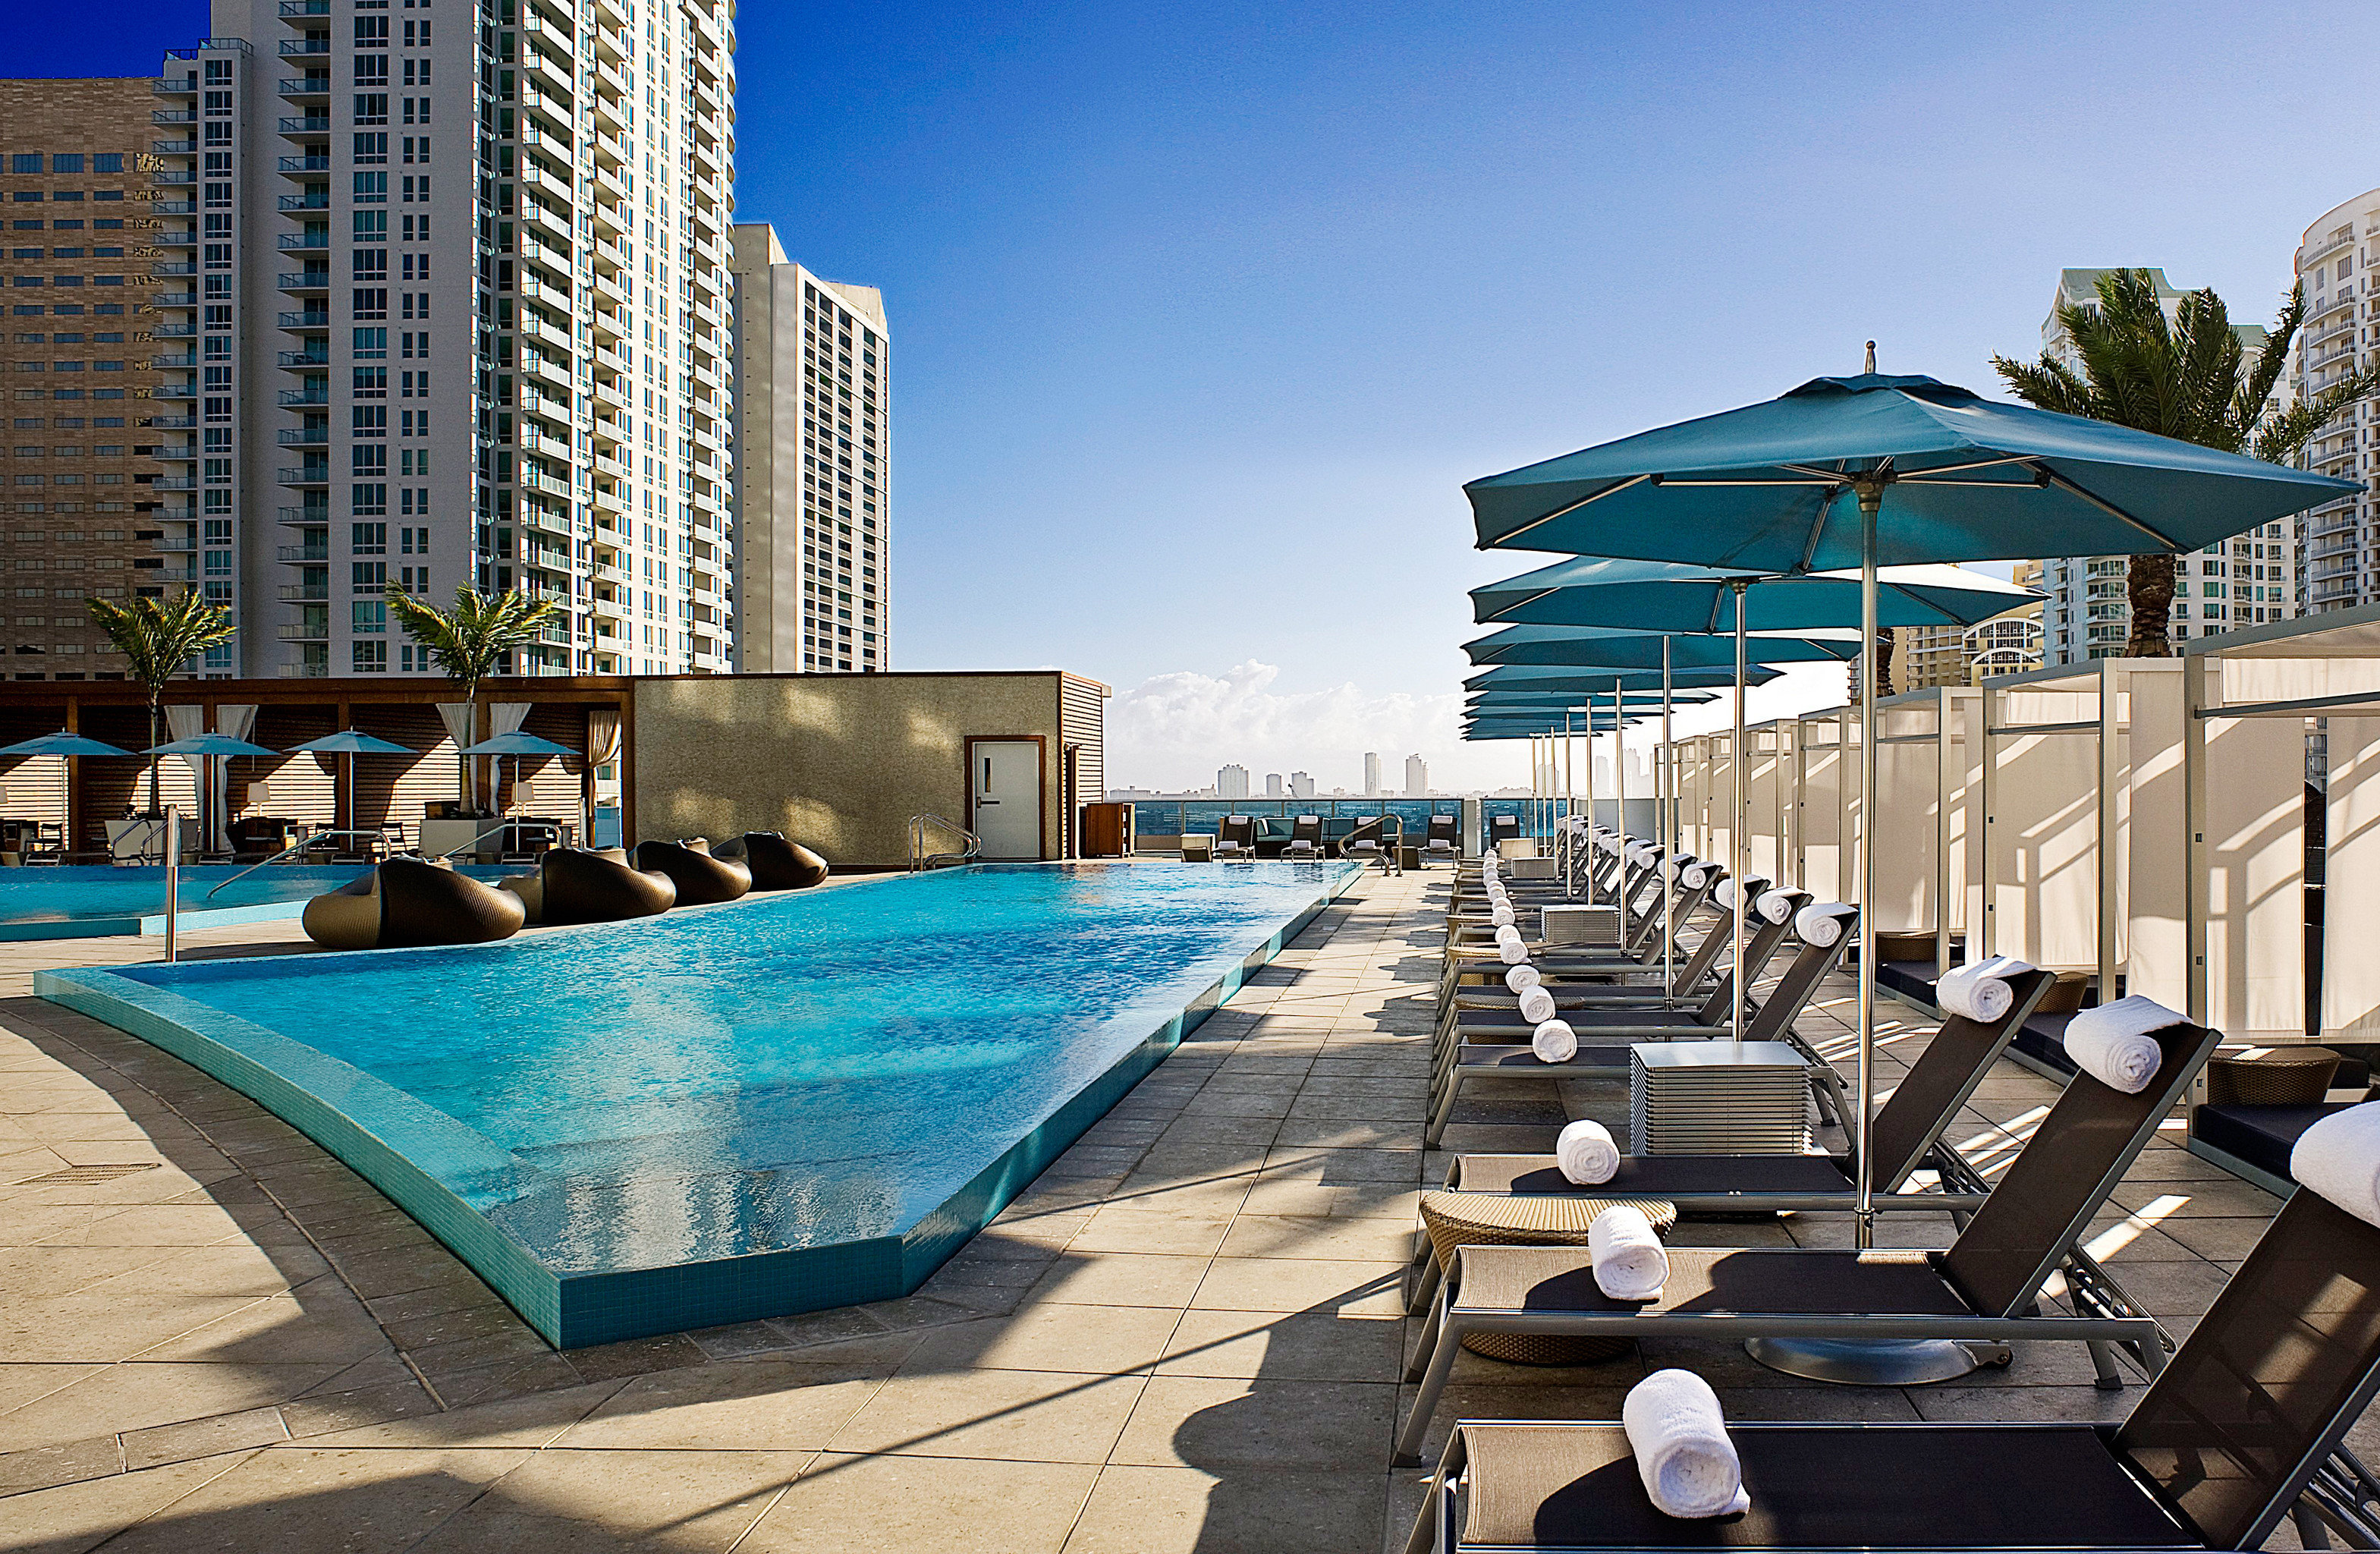 Lounge Modern Outdoors Pool Rooftop Waterfront sky leisure swimming pool condominium Architecture dock walkway marina Resort Downtown